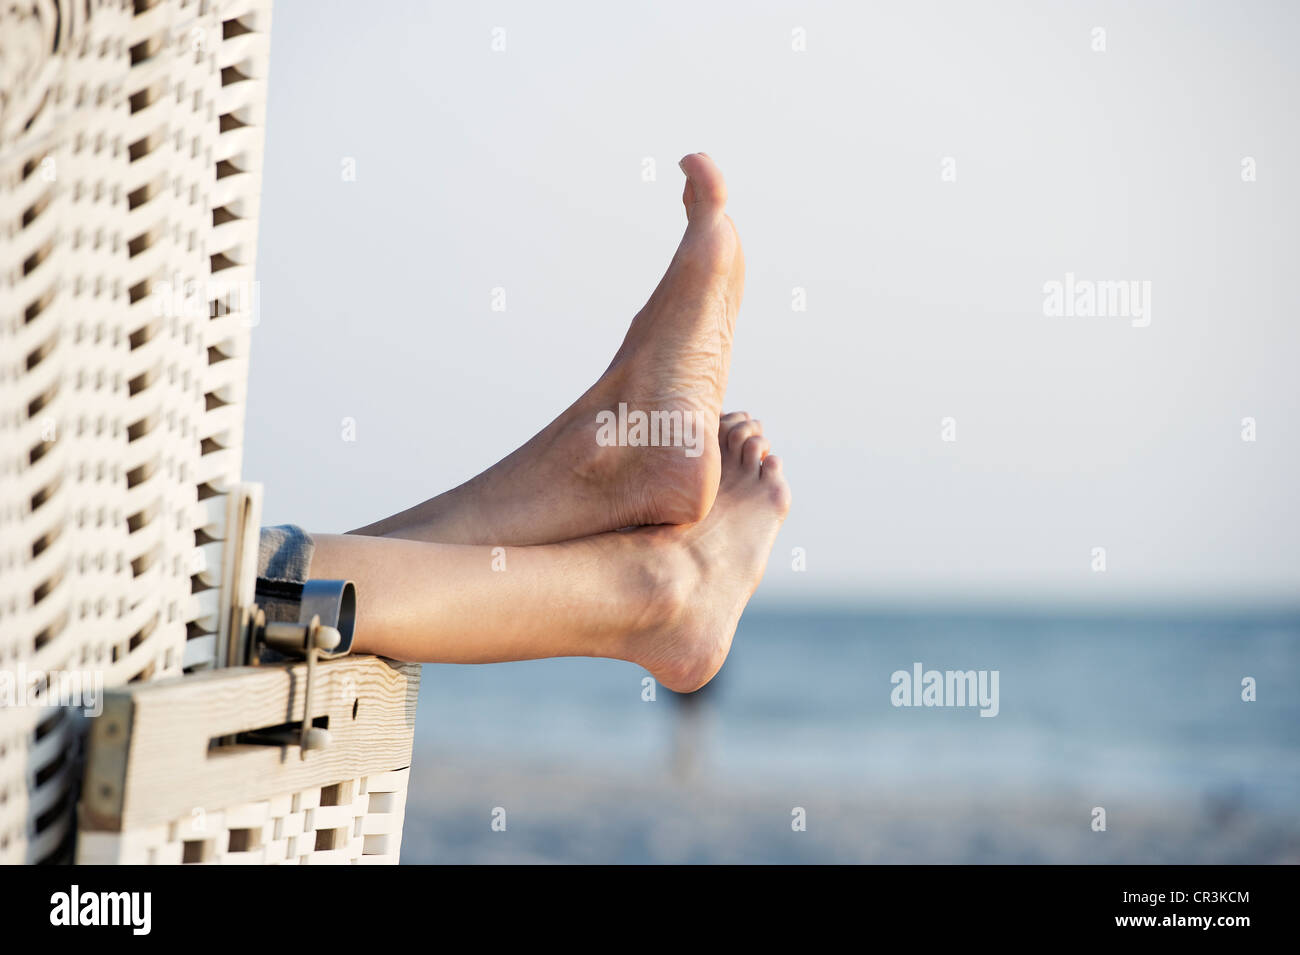 Roofed wicker beach chair and bare feet, Westerland, Sylt island, Schleswig-Holstein, Germany, Europe - Stock Image